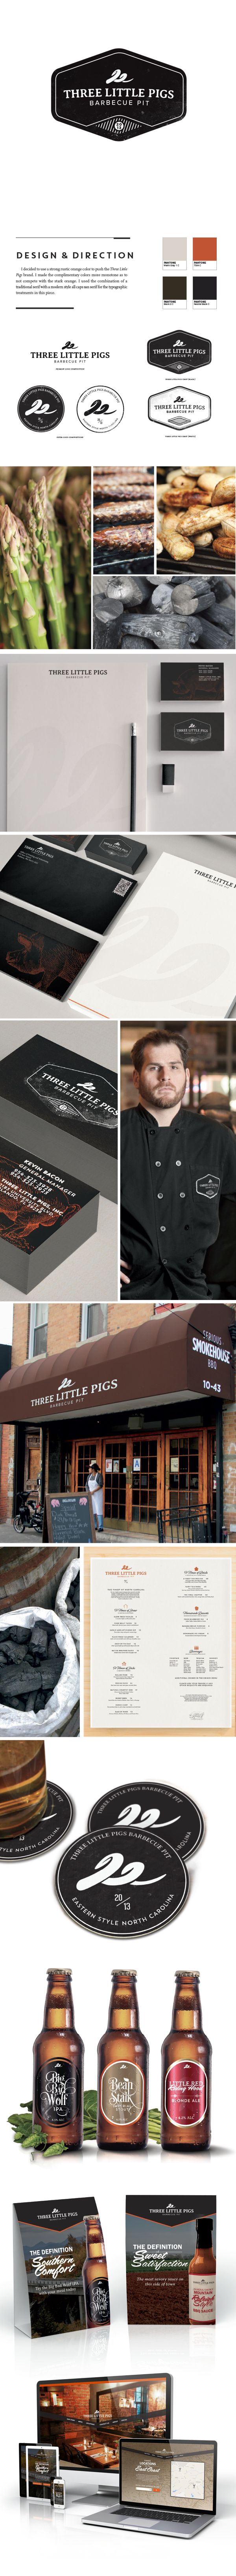 Three Little Pigs Barbecue Pit by Christopher Reath, via Behance